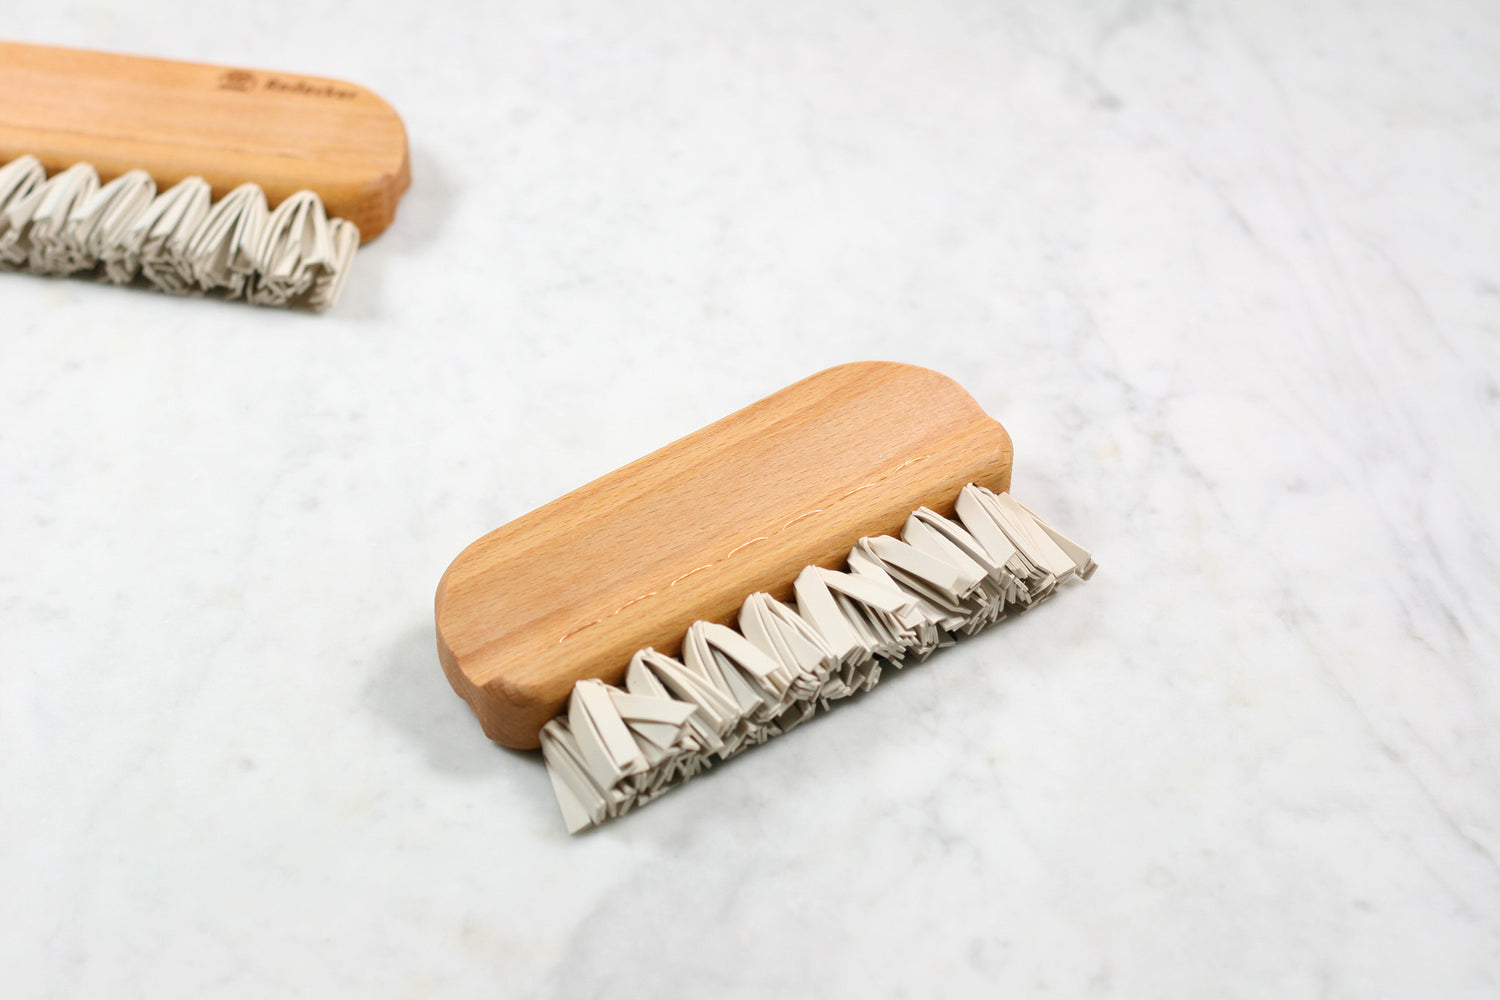 Burstenhaus Redecker natural rubber lint brush.